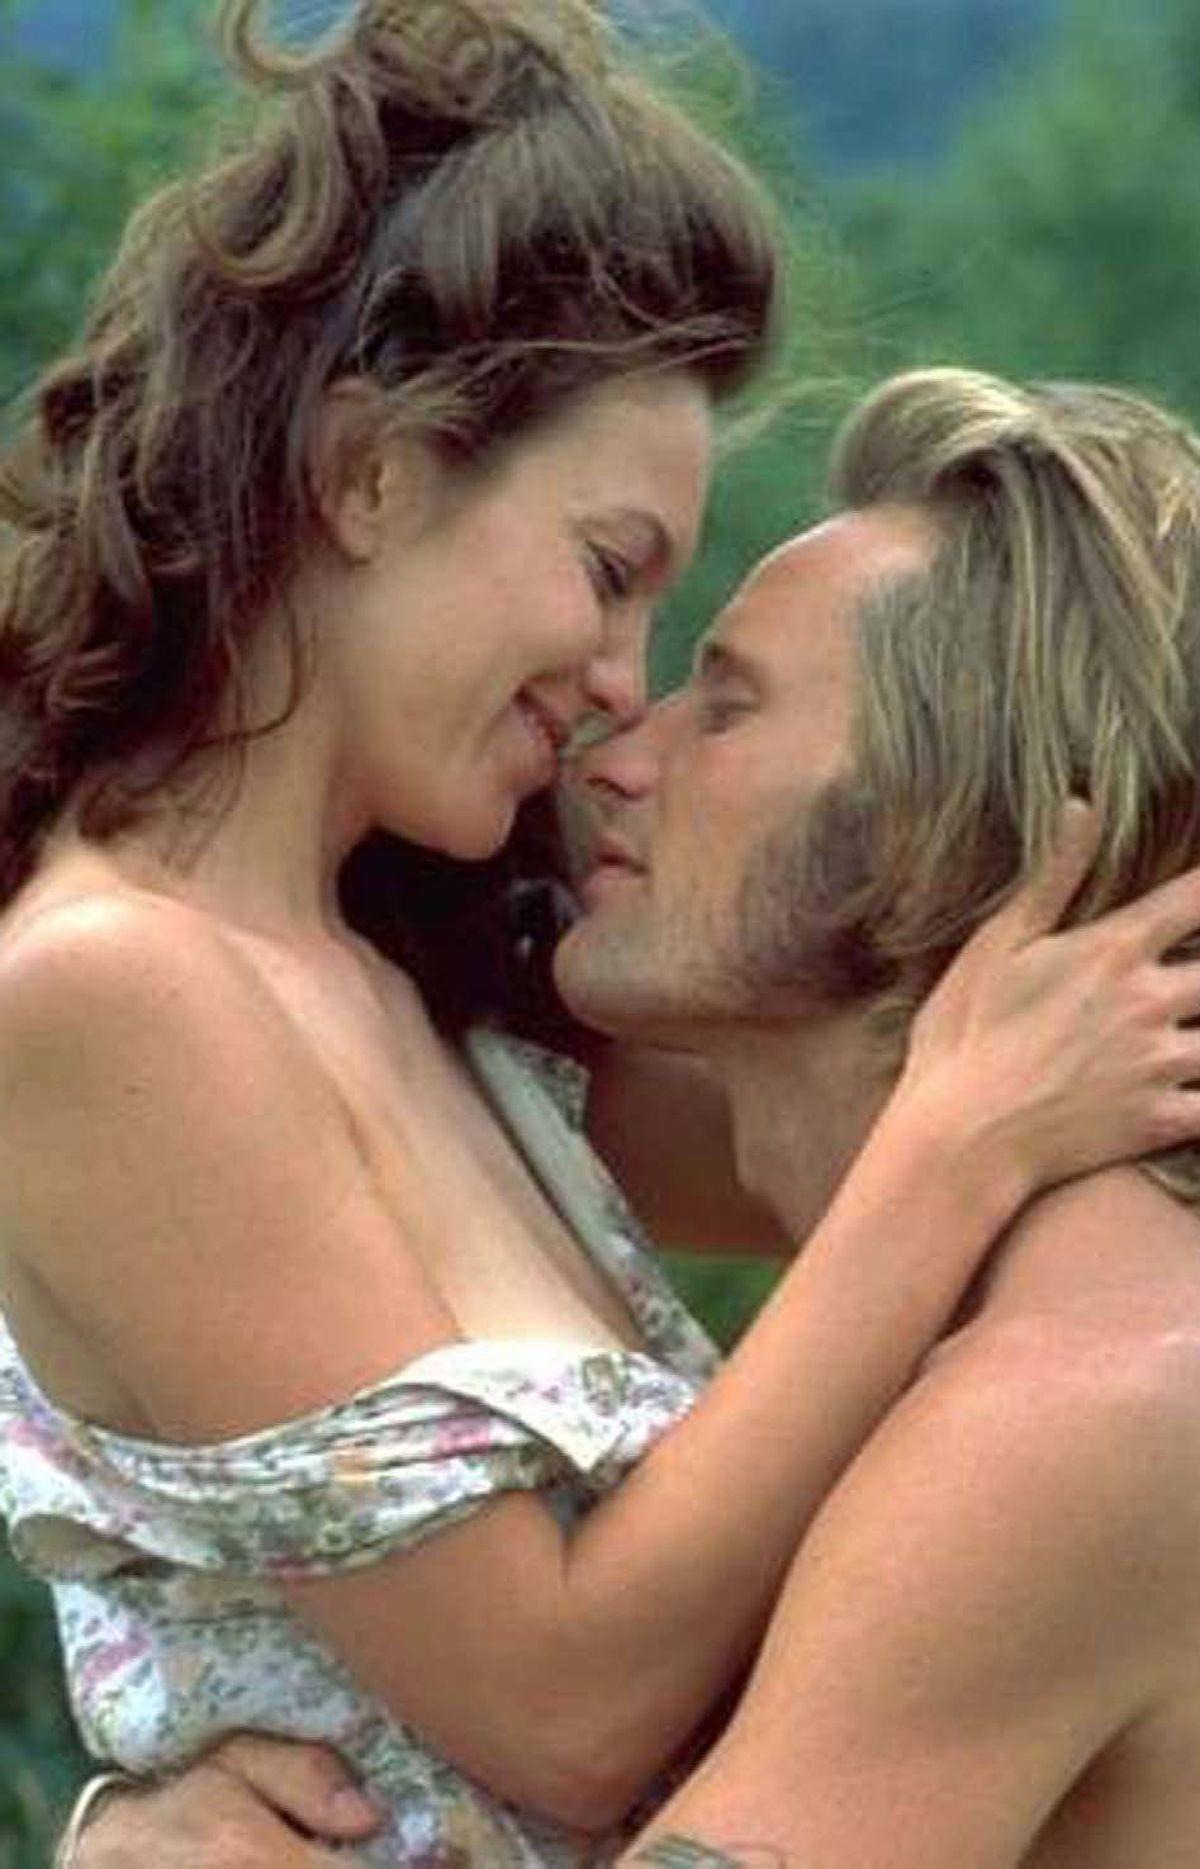 MOVIE A Walk on the Moon Vision, midnight ET; 9 p.m. PT Ranked No. 9 on Entertainment Weekly's list of the 50 Sexiest Movies of All Time, this 1999 drama is a heartfelt snapshot of recent history. Set in New York during the summer of 1969, the story stars Diane Lane as the bored housewife Pearl, whose husband Marty (Liev Schreiber) fixes TVs for a living. When Pearl takes the kids and her mom to upstate New York for the annual summer vacation, Marty has to stay in the city to repair more sets than usual, due to the impending Apollo 11 moon landing. Left to her own devices, Pearl falls for the charms of the handsome blouse salesman Walker (Viggo Mortensen), who convinces her to accompany him to the other big event of 1969: The Woodstock Festival. The time-capsule story is made even better through the use of great sixties pop music.